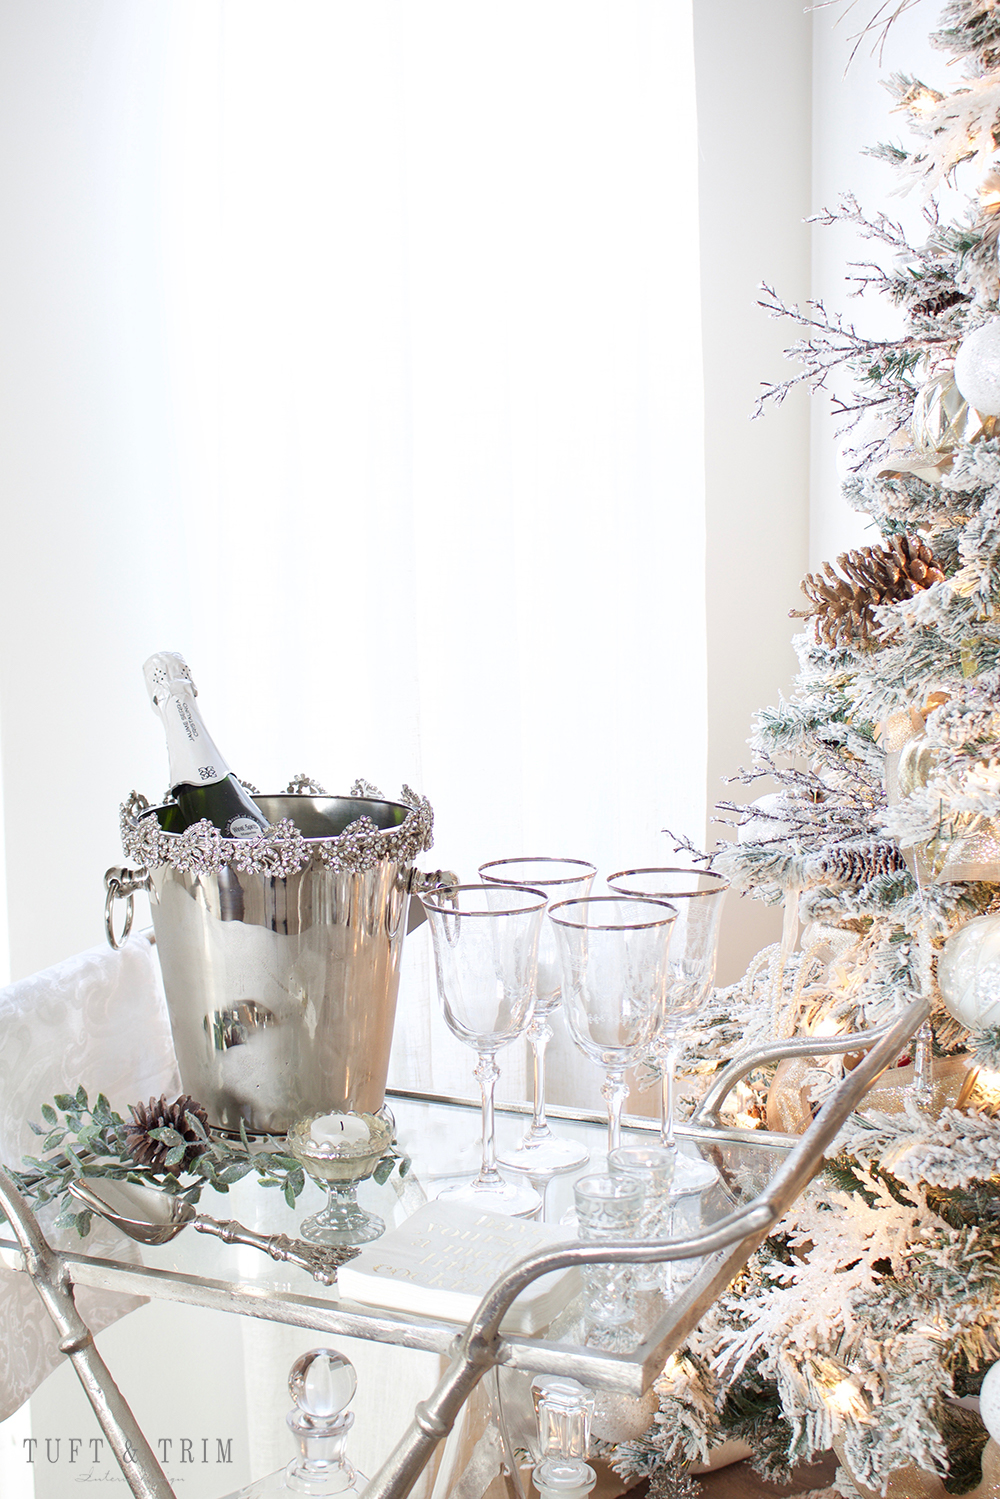 Tuft & Trim Interior Design. How to Style your Bar Cart for the Holidays